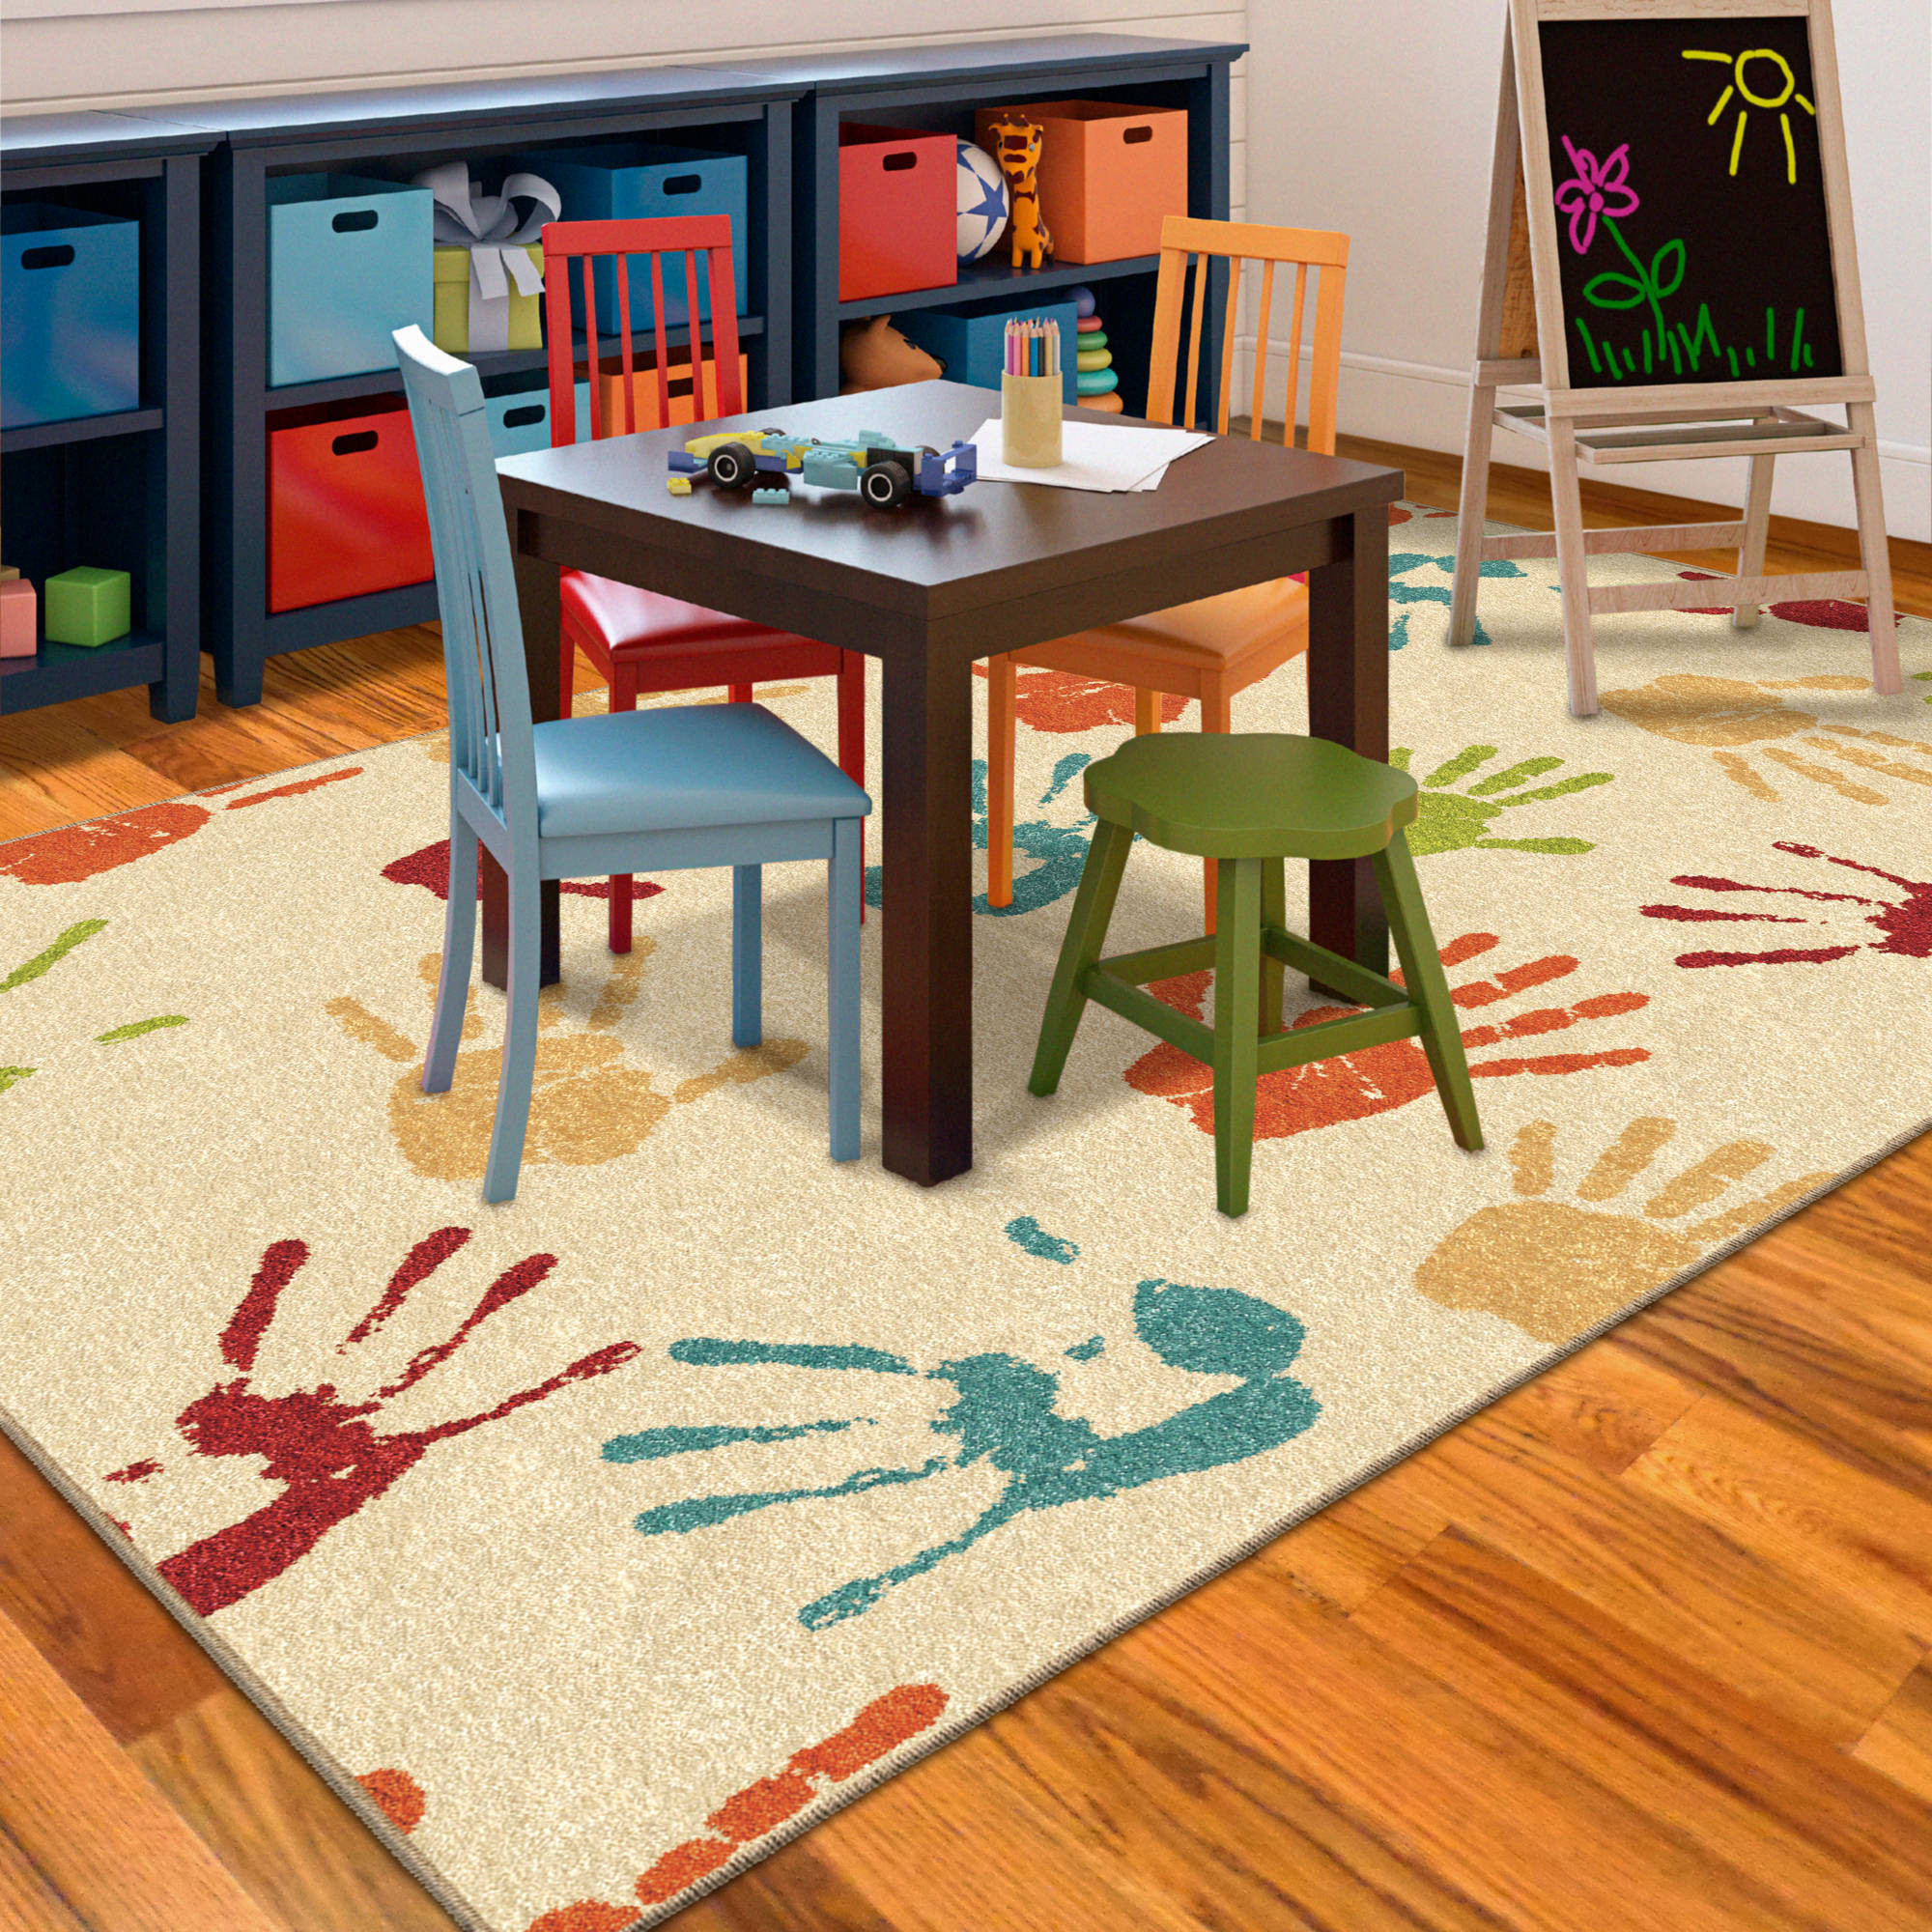 Carpet Designs for Kids 5 Things to Think About when Choosing Kids Playroom Rugs